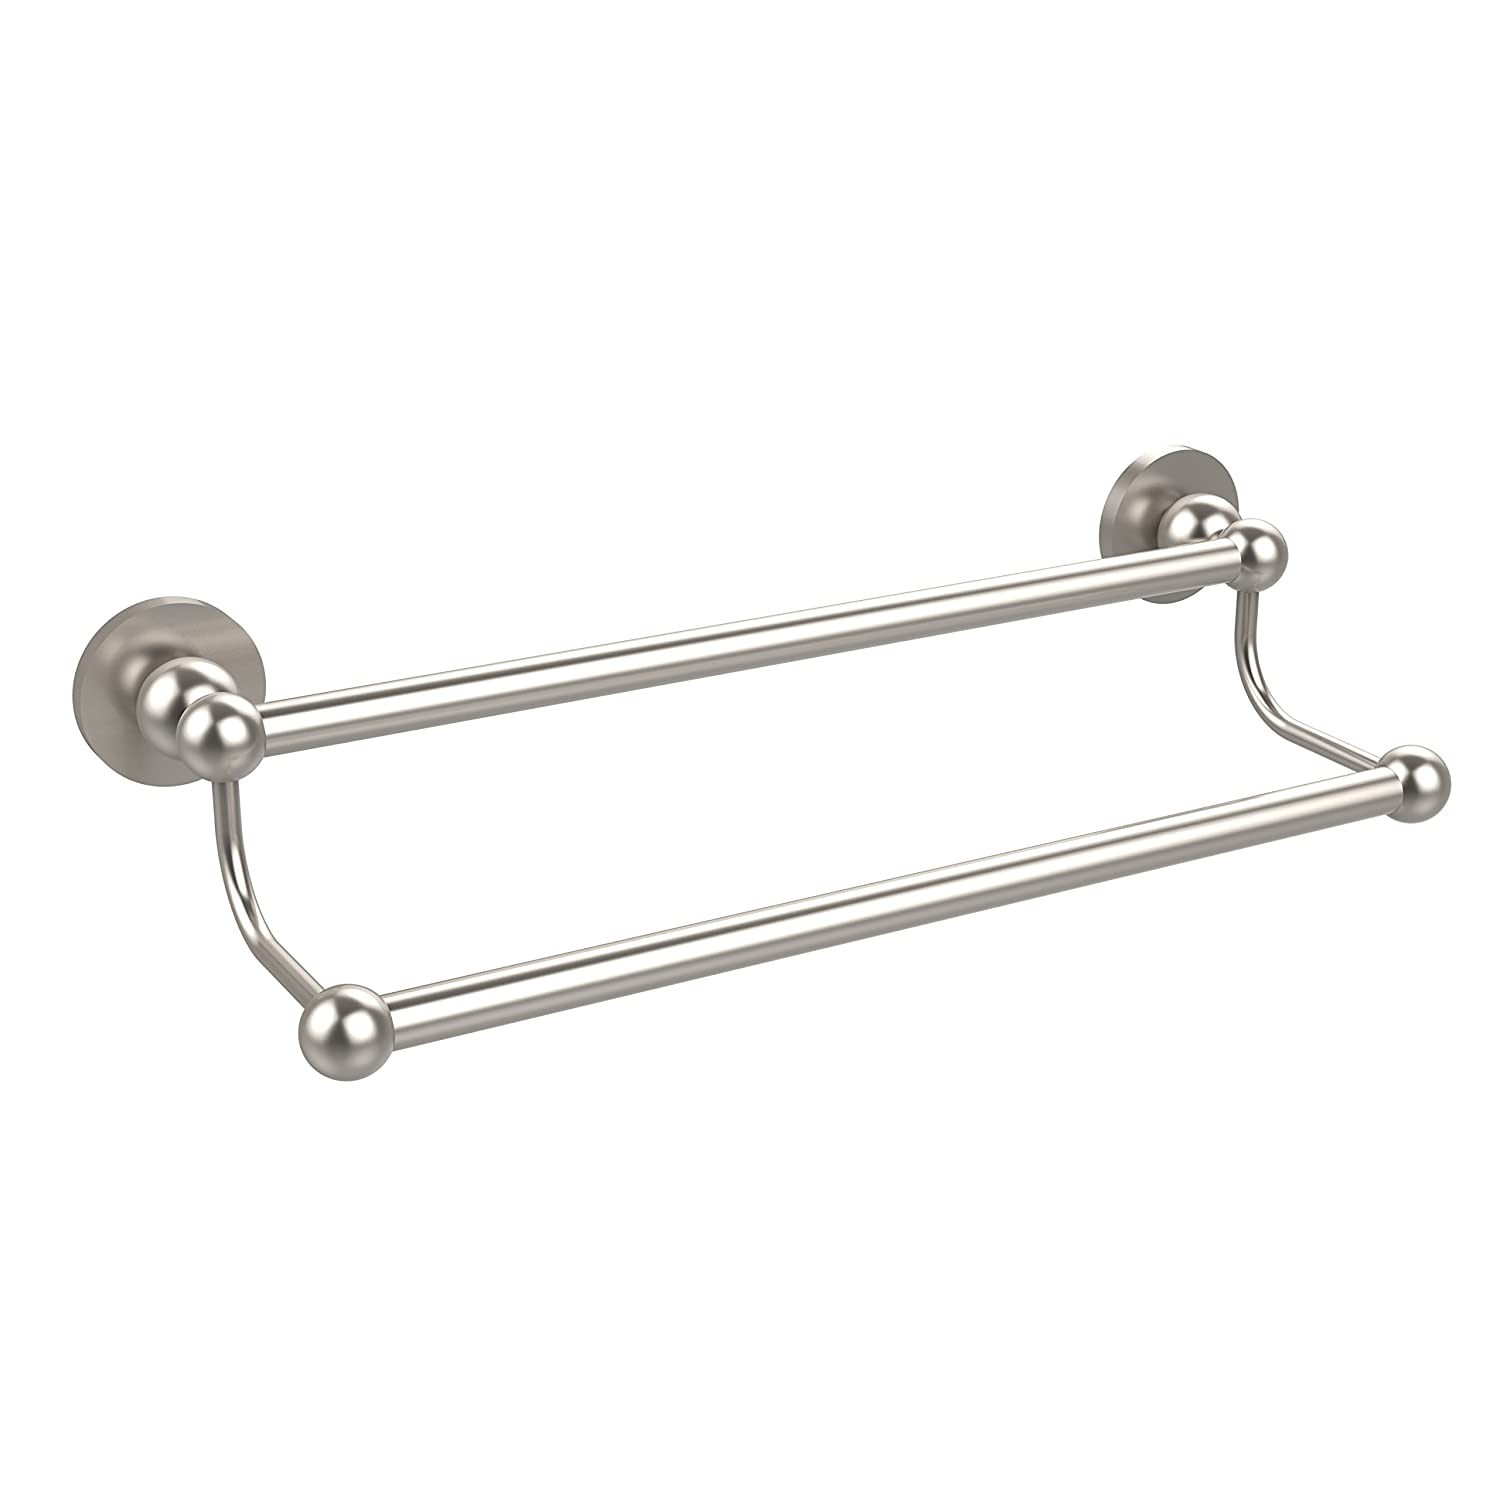 Allied Brass BL-72/36-SN Bolero Collection 36 Inch Double Towel Bar Satin Nickel